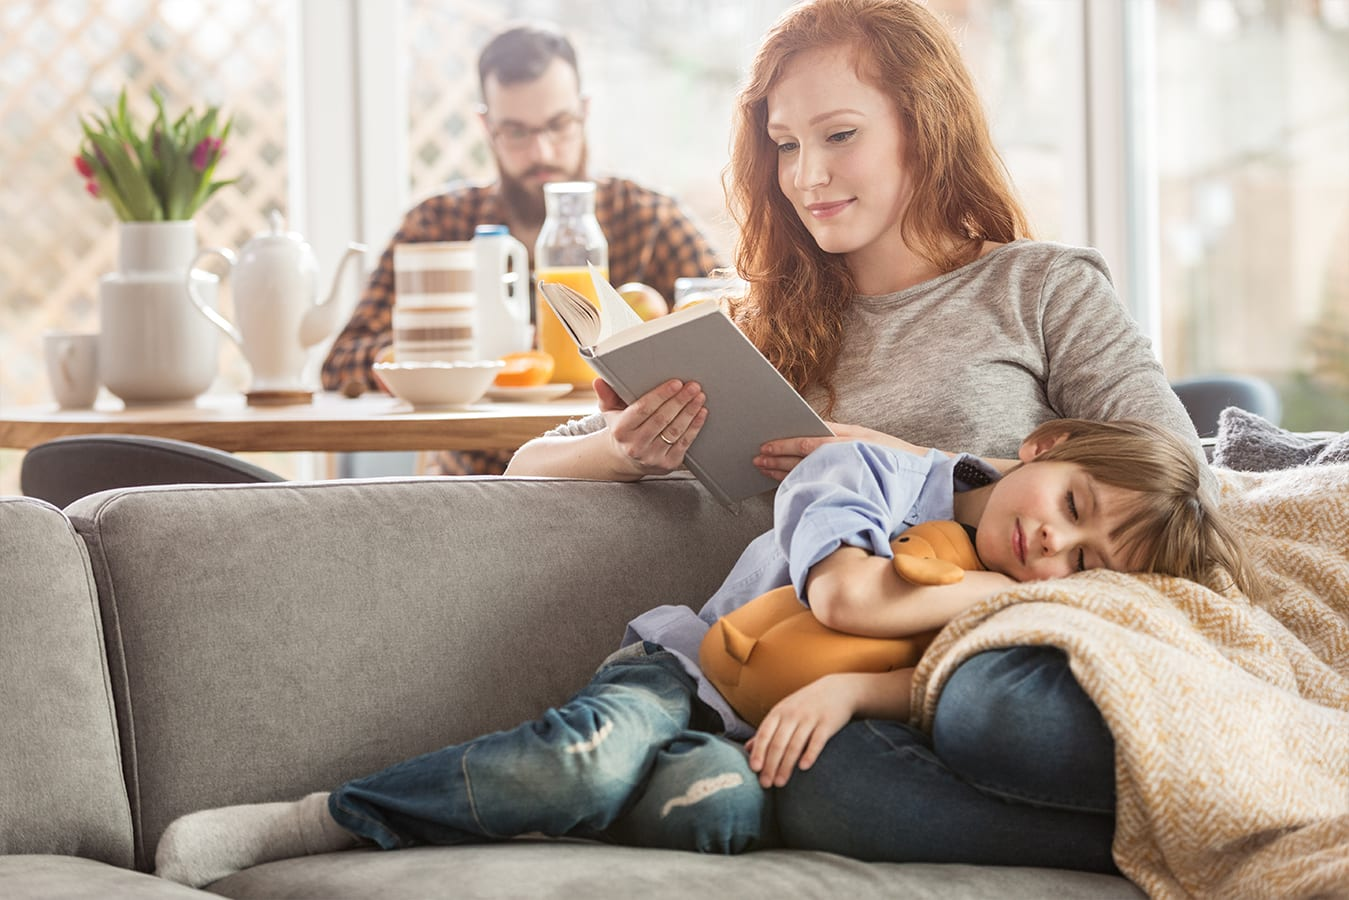 Life insurance 101 - Financial Peace of Mind